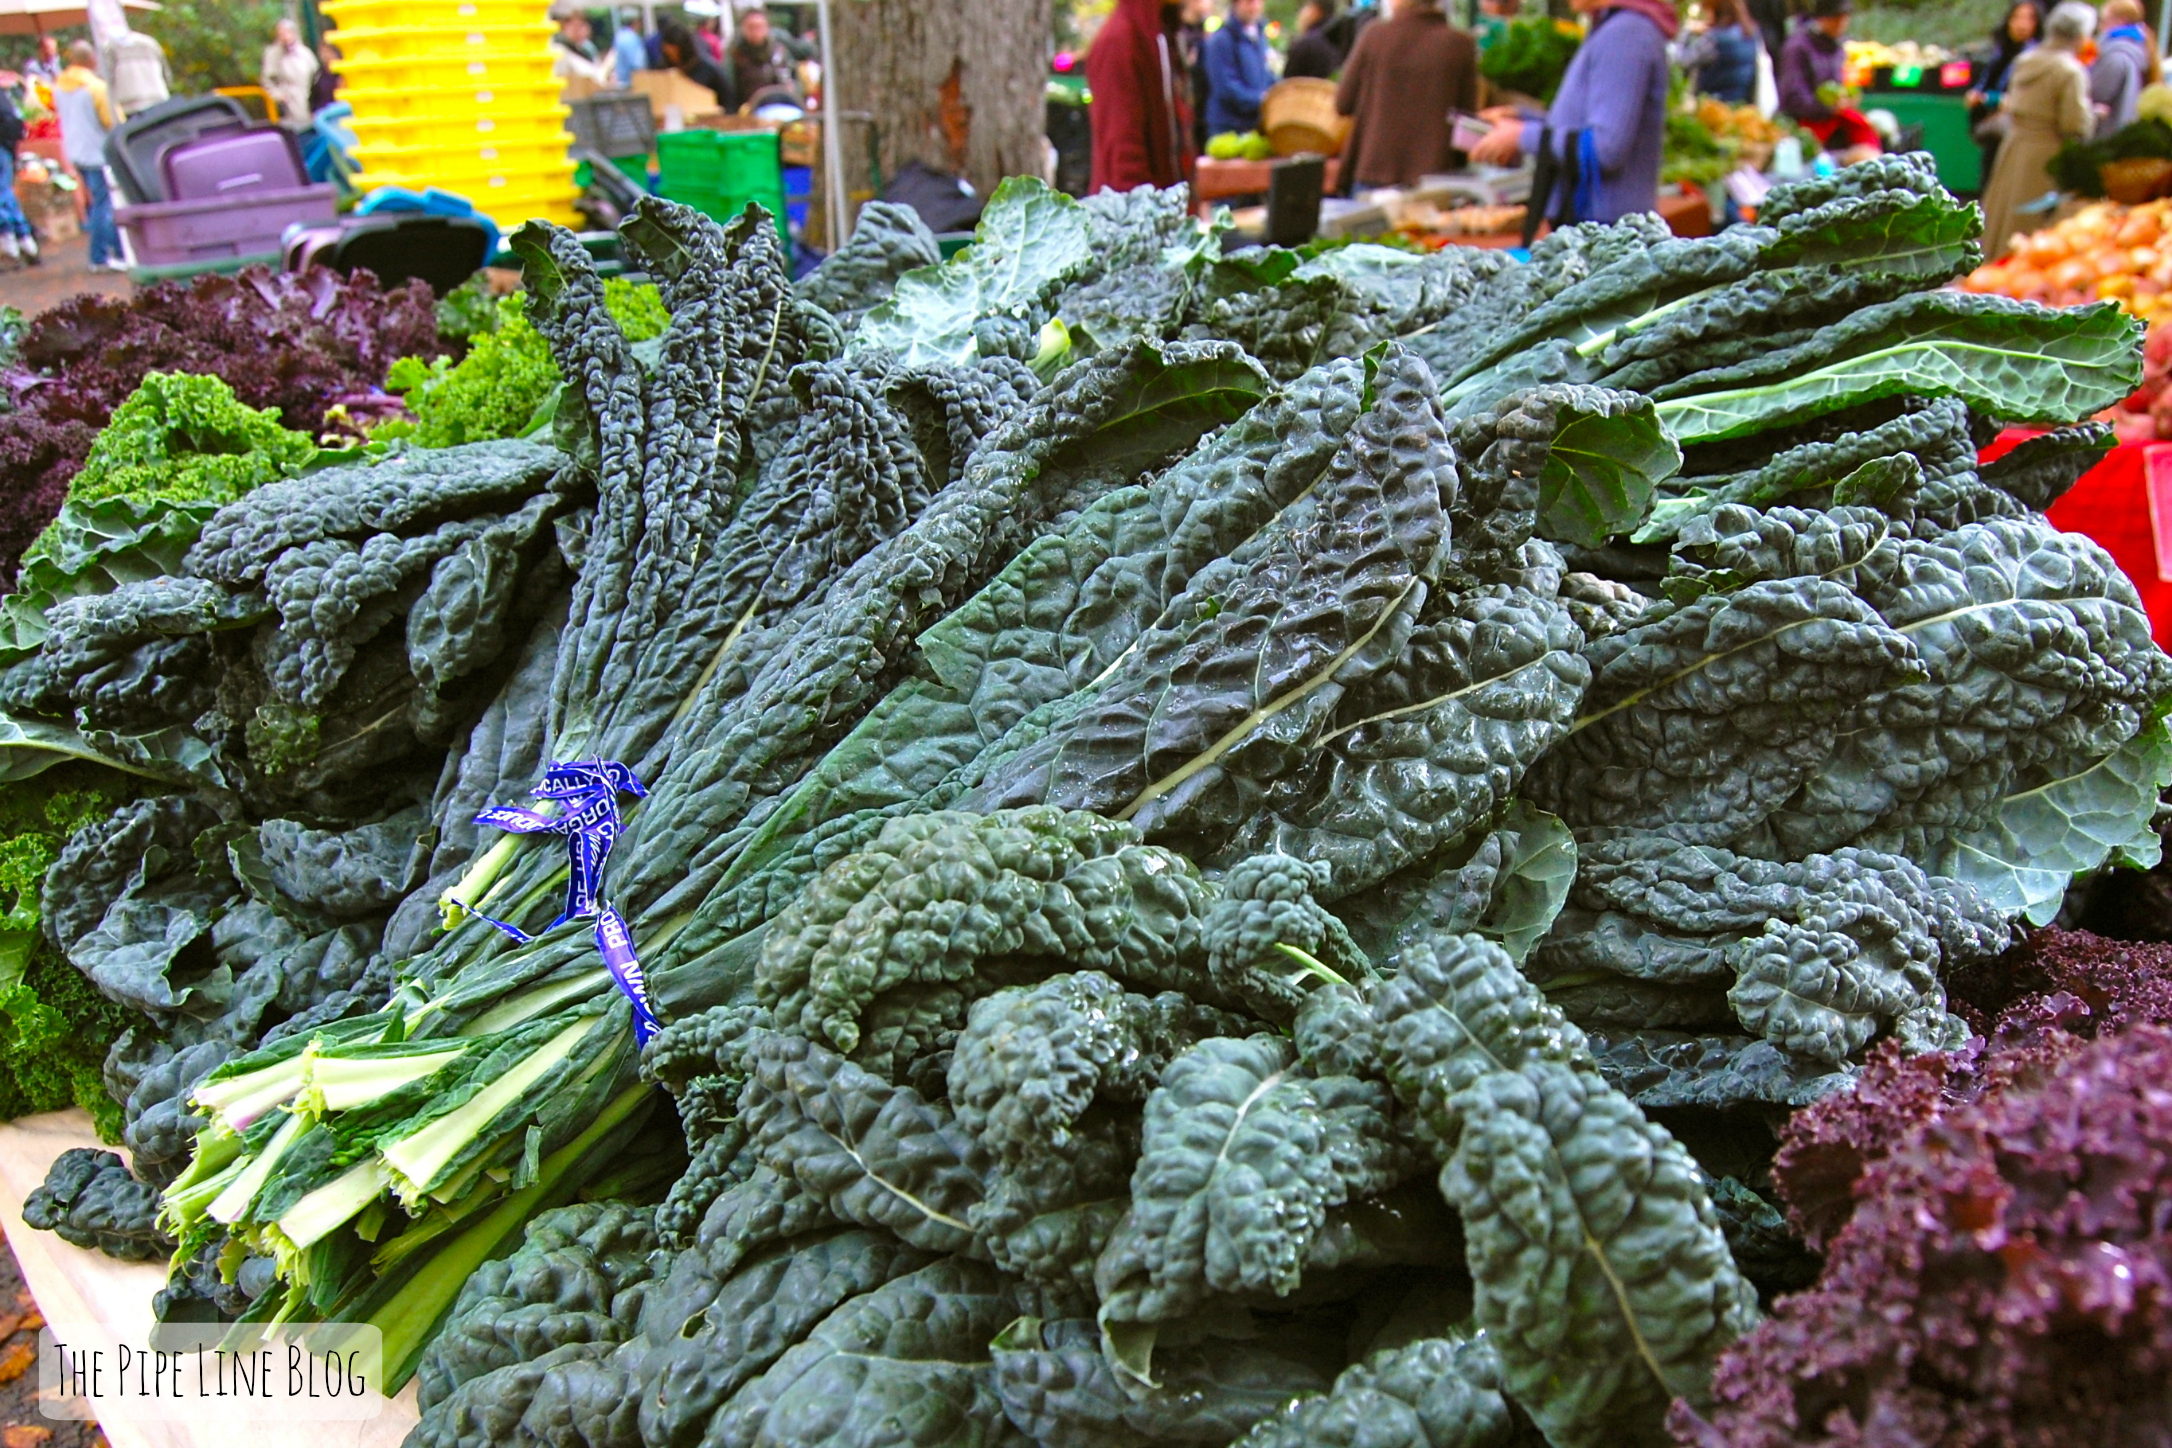 Piping Rock - The Pipe Line - Kale Superfood